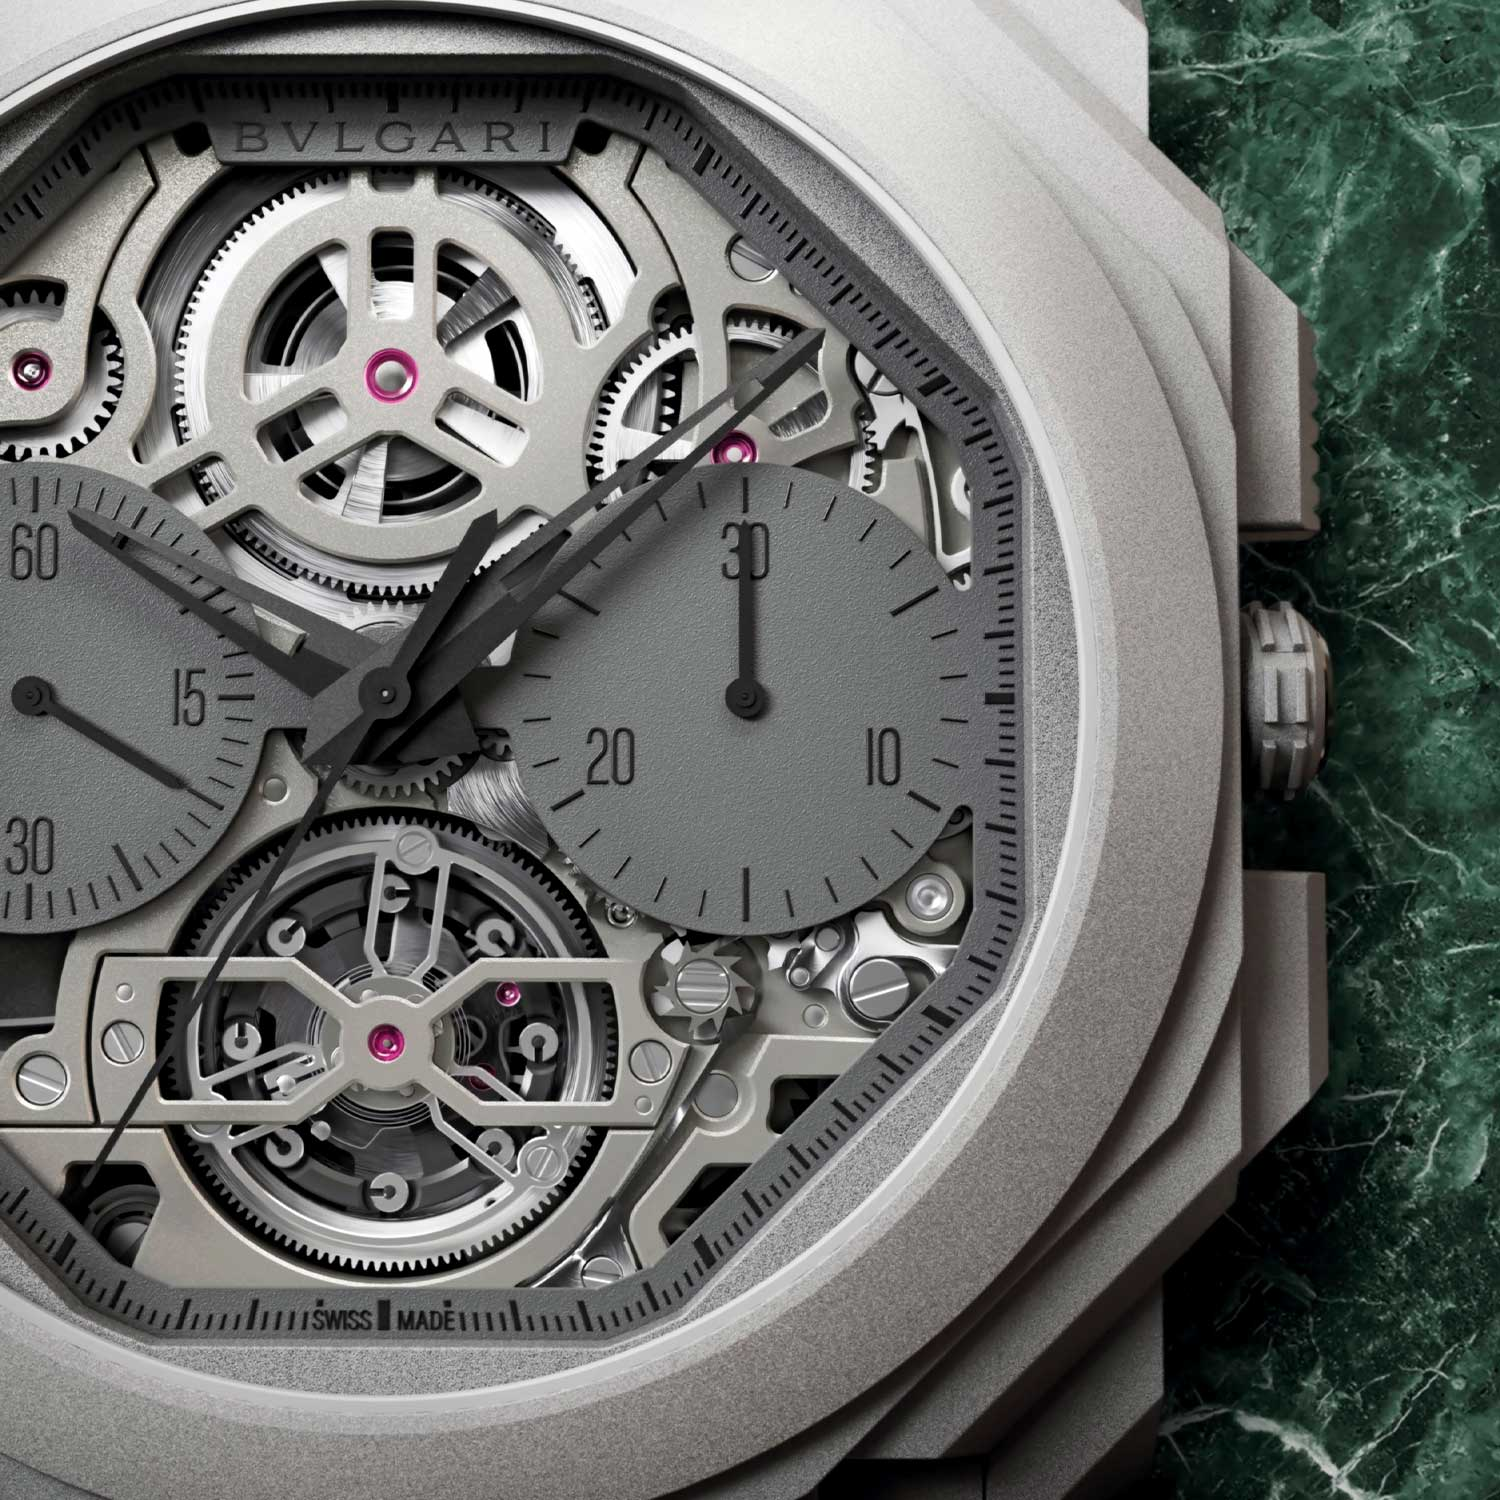 The dial of the Octo Finissimo Tourbillon Chronograph Skeleton Automatic is skeletonised to fully show the complexity of the BVL 388 caliber from the front.